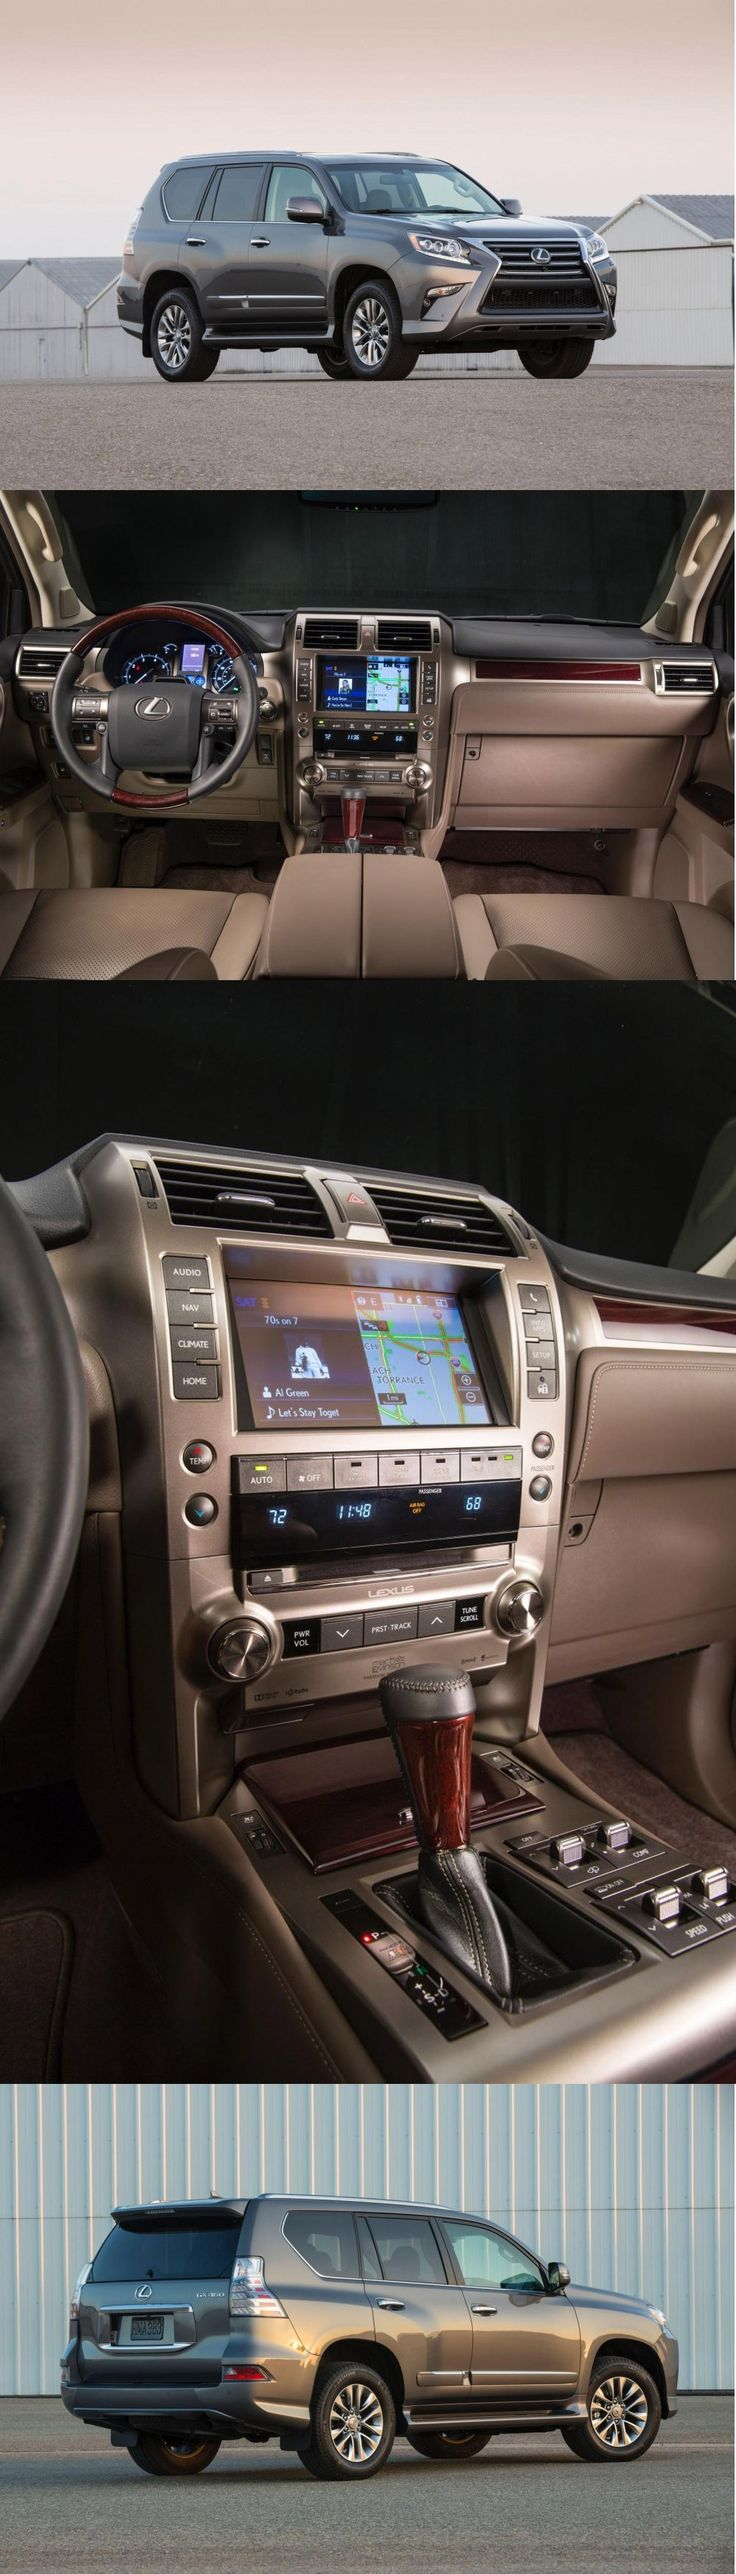 Lexus gx 460 all the bells and whistles